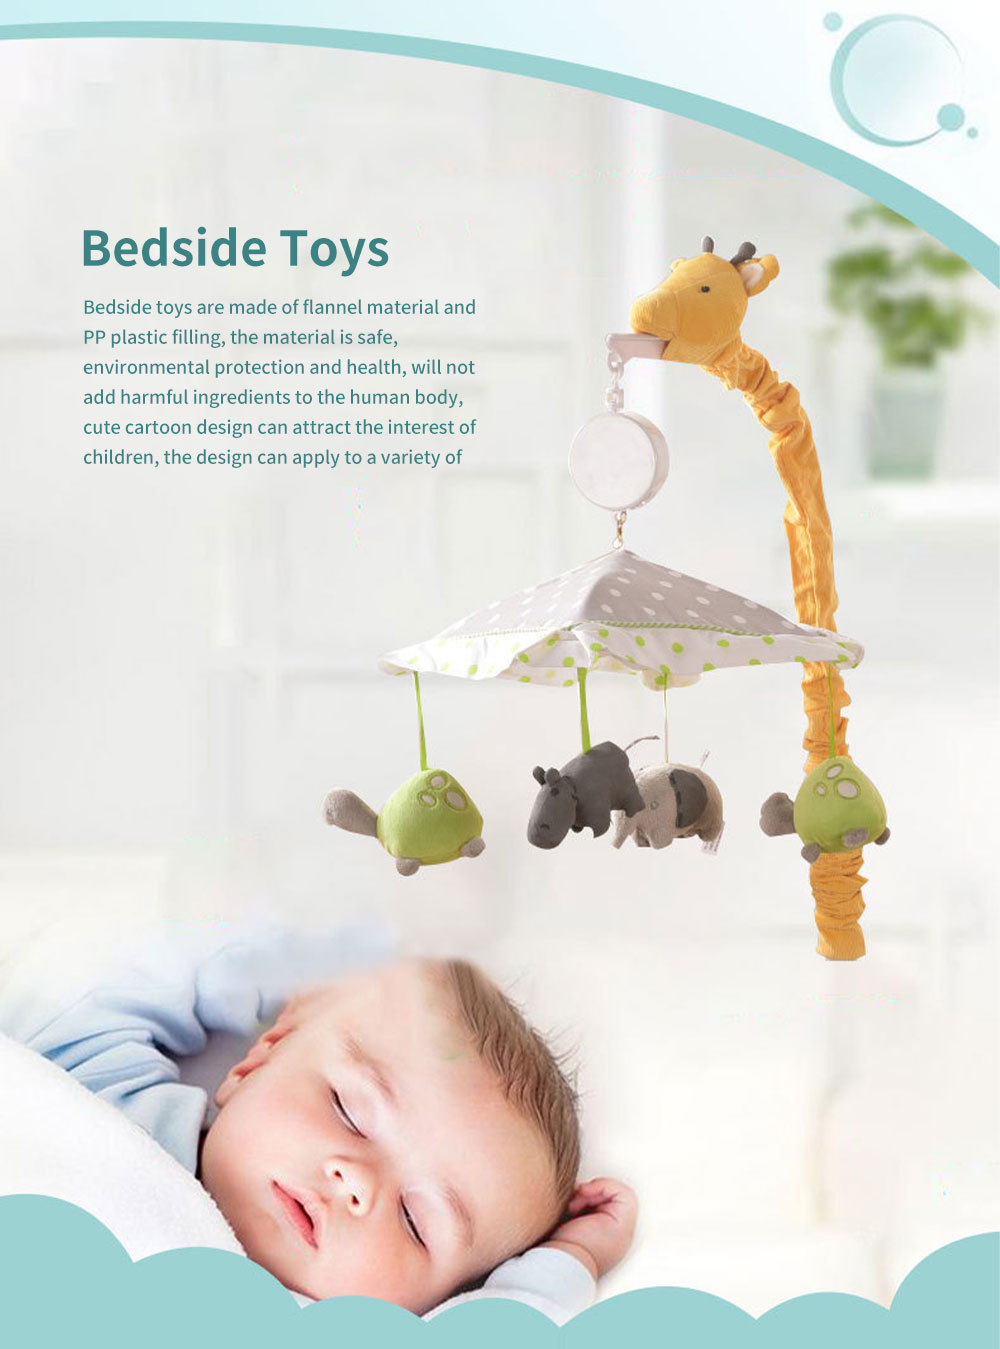 Giraffe Music Bed Bell Bedside Toys Flannel PP Material Cartoon Modeling Giraffe Pendant Healthy for Baby Rattles Soft Baby Mobiles 0